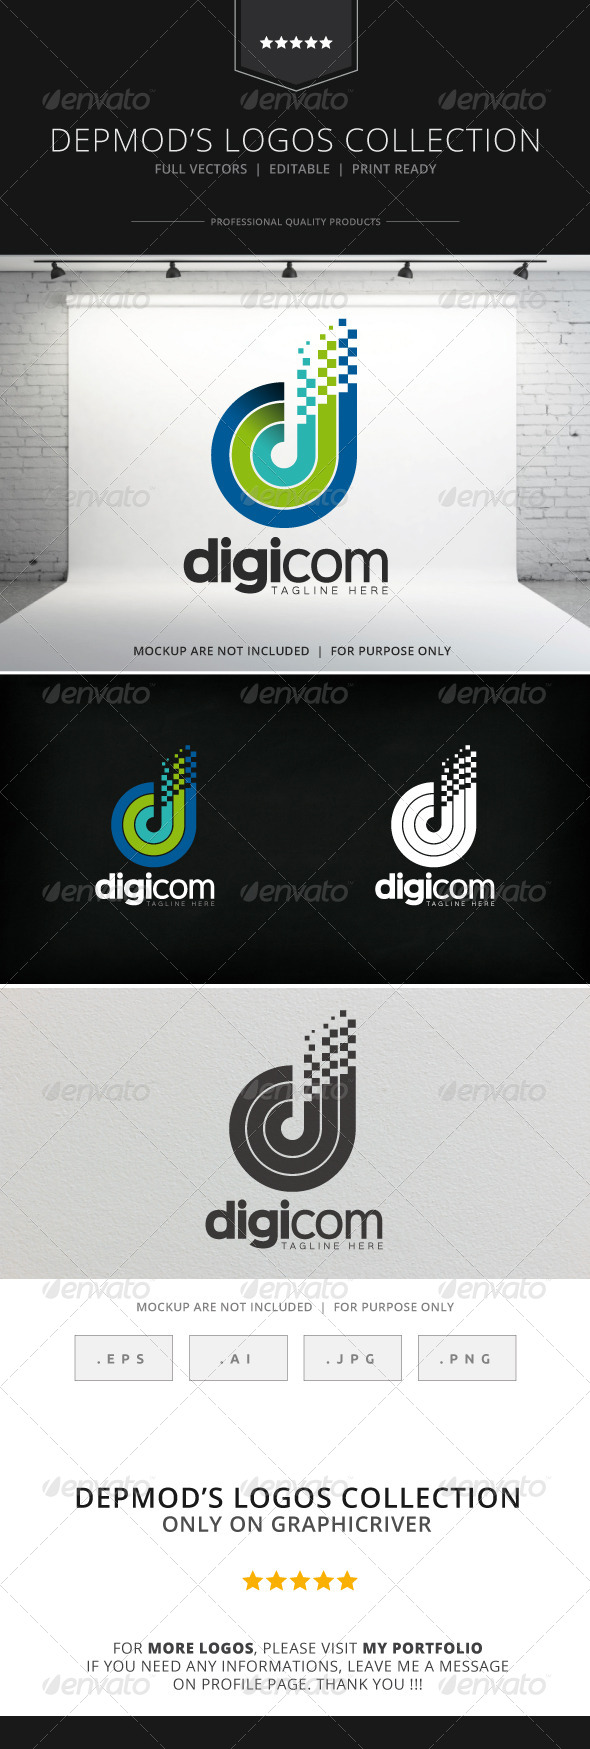 GraphicRiver Digicom Logo 8510020